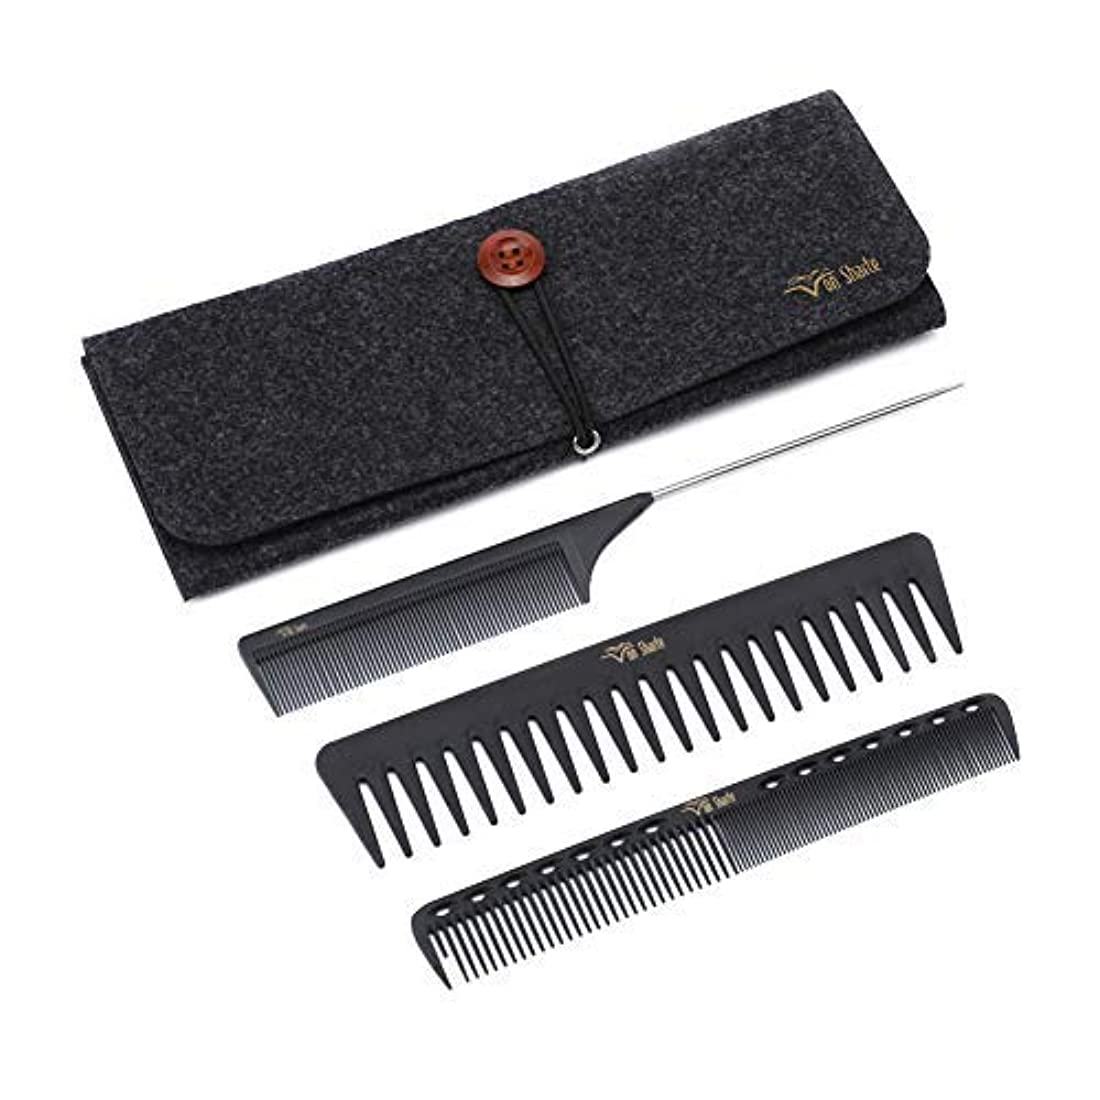 素晴らしさ急速な変位Styling Comb Set,Hairdresser Barber Comb Cutting Hair Comb Carbon Fiber Wide Tooth Comb Metal Rat Pin Tail Comb...